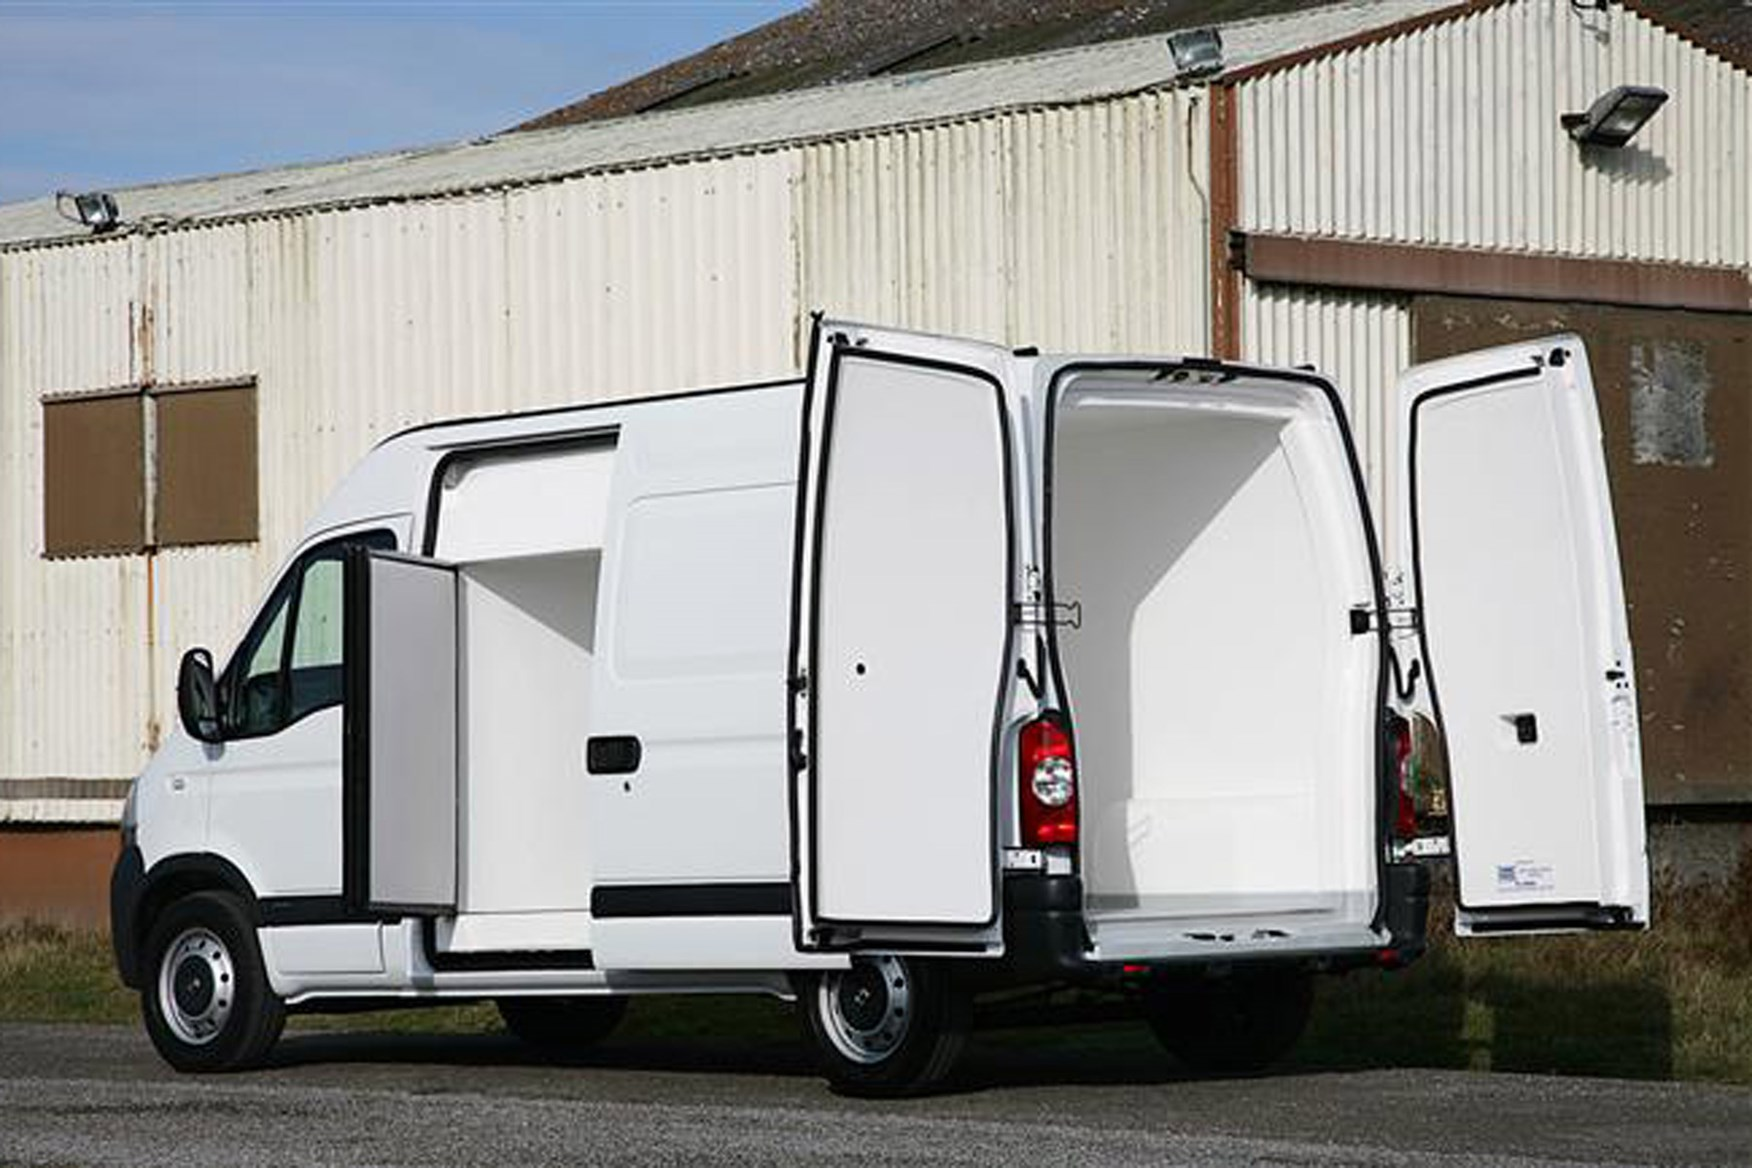 Nissan Interstar 2003-2011 review on Parkers Vans - load area access